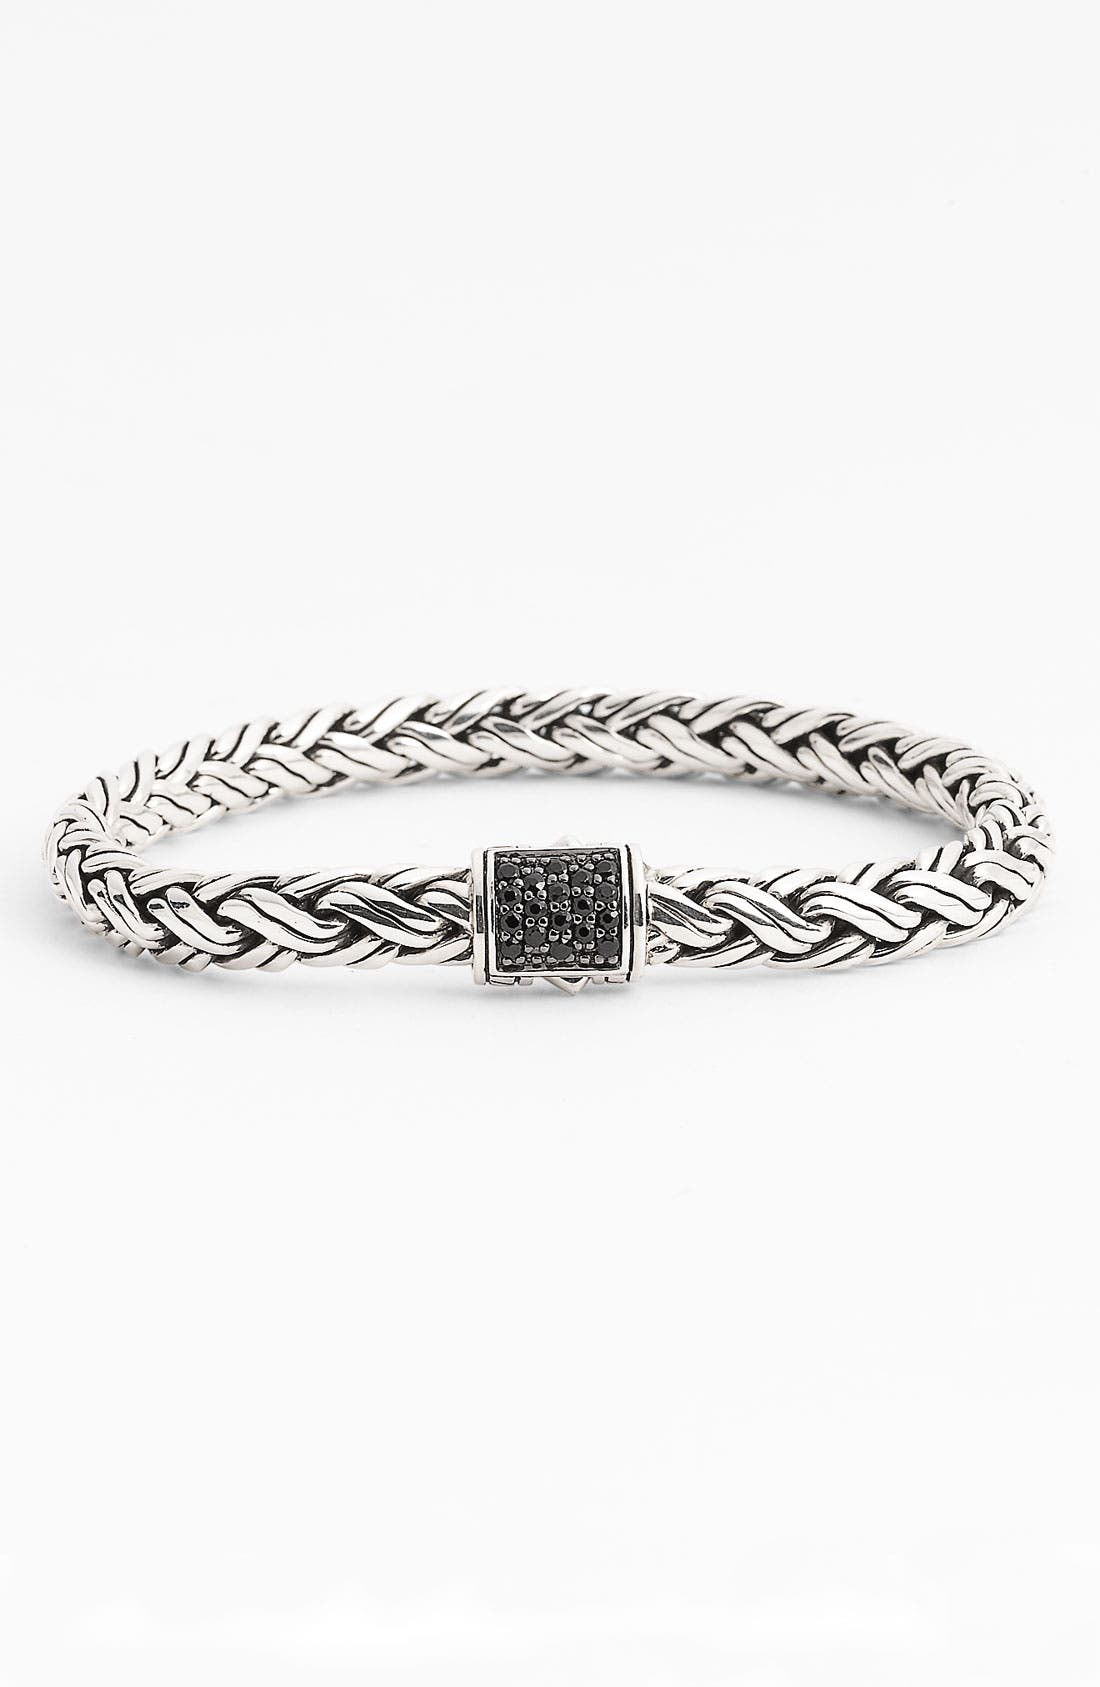 Main Image - John Hardy 'Classic Chain' Small Braided Bracelet (Nordstrom Exclusive)